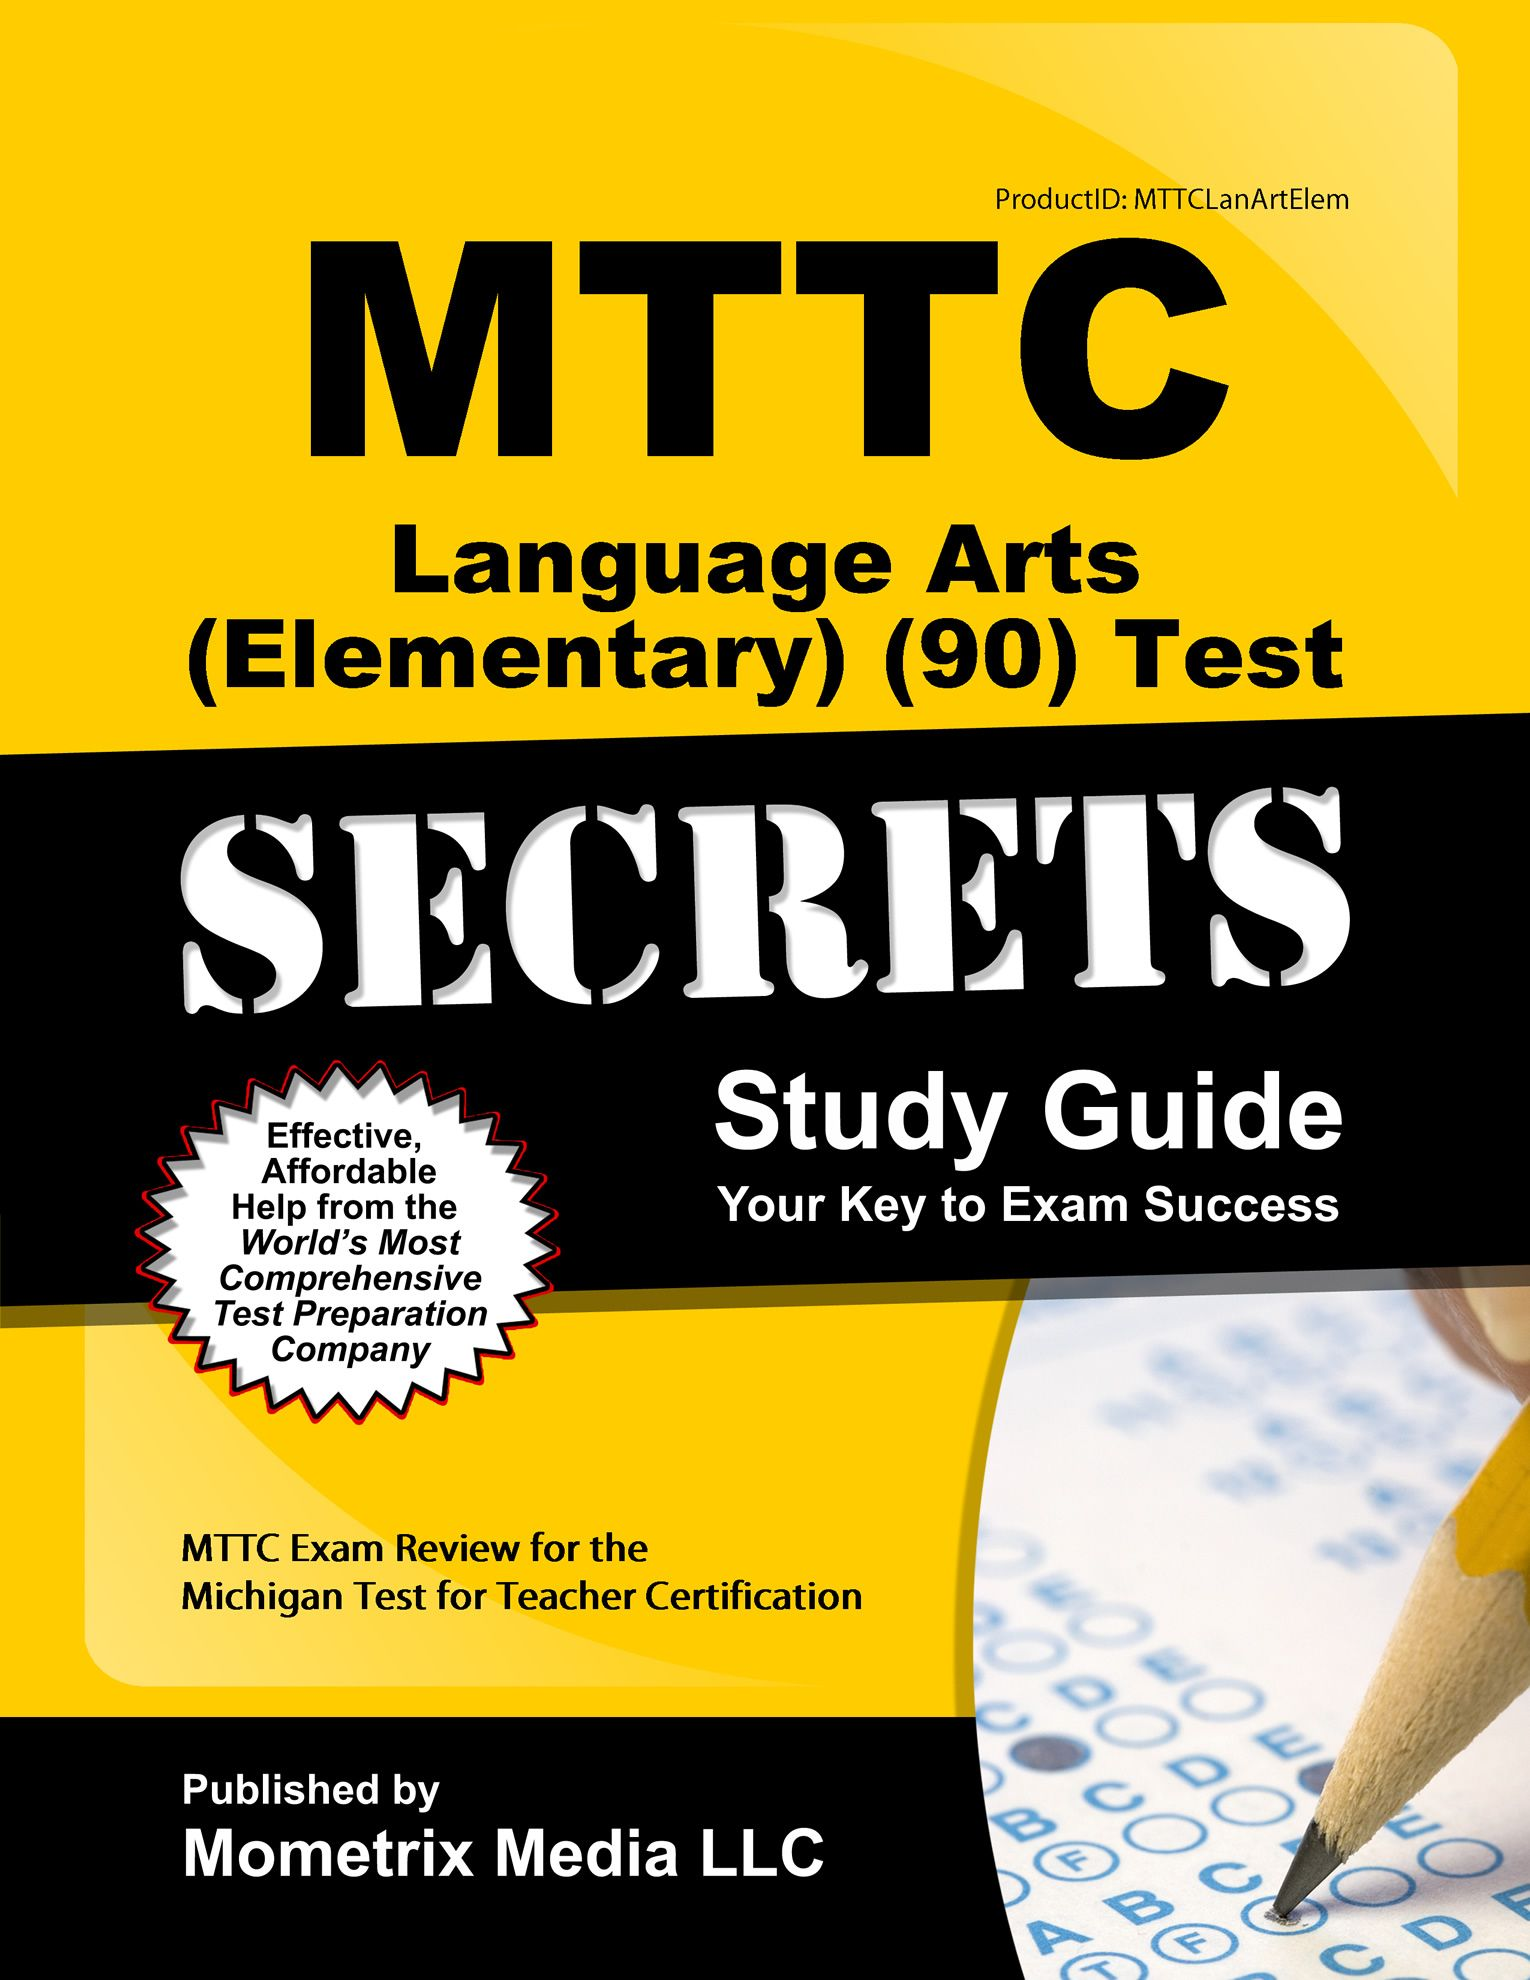 Pin by Test Prep Review on MTTC Study Guide | Pinterest